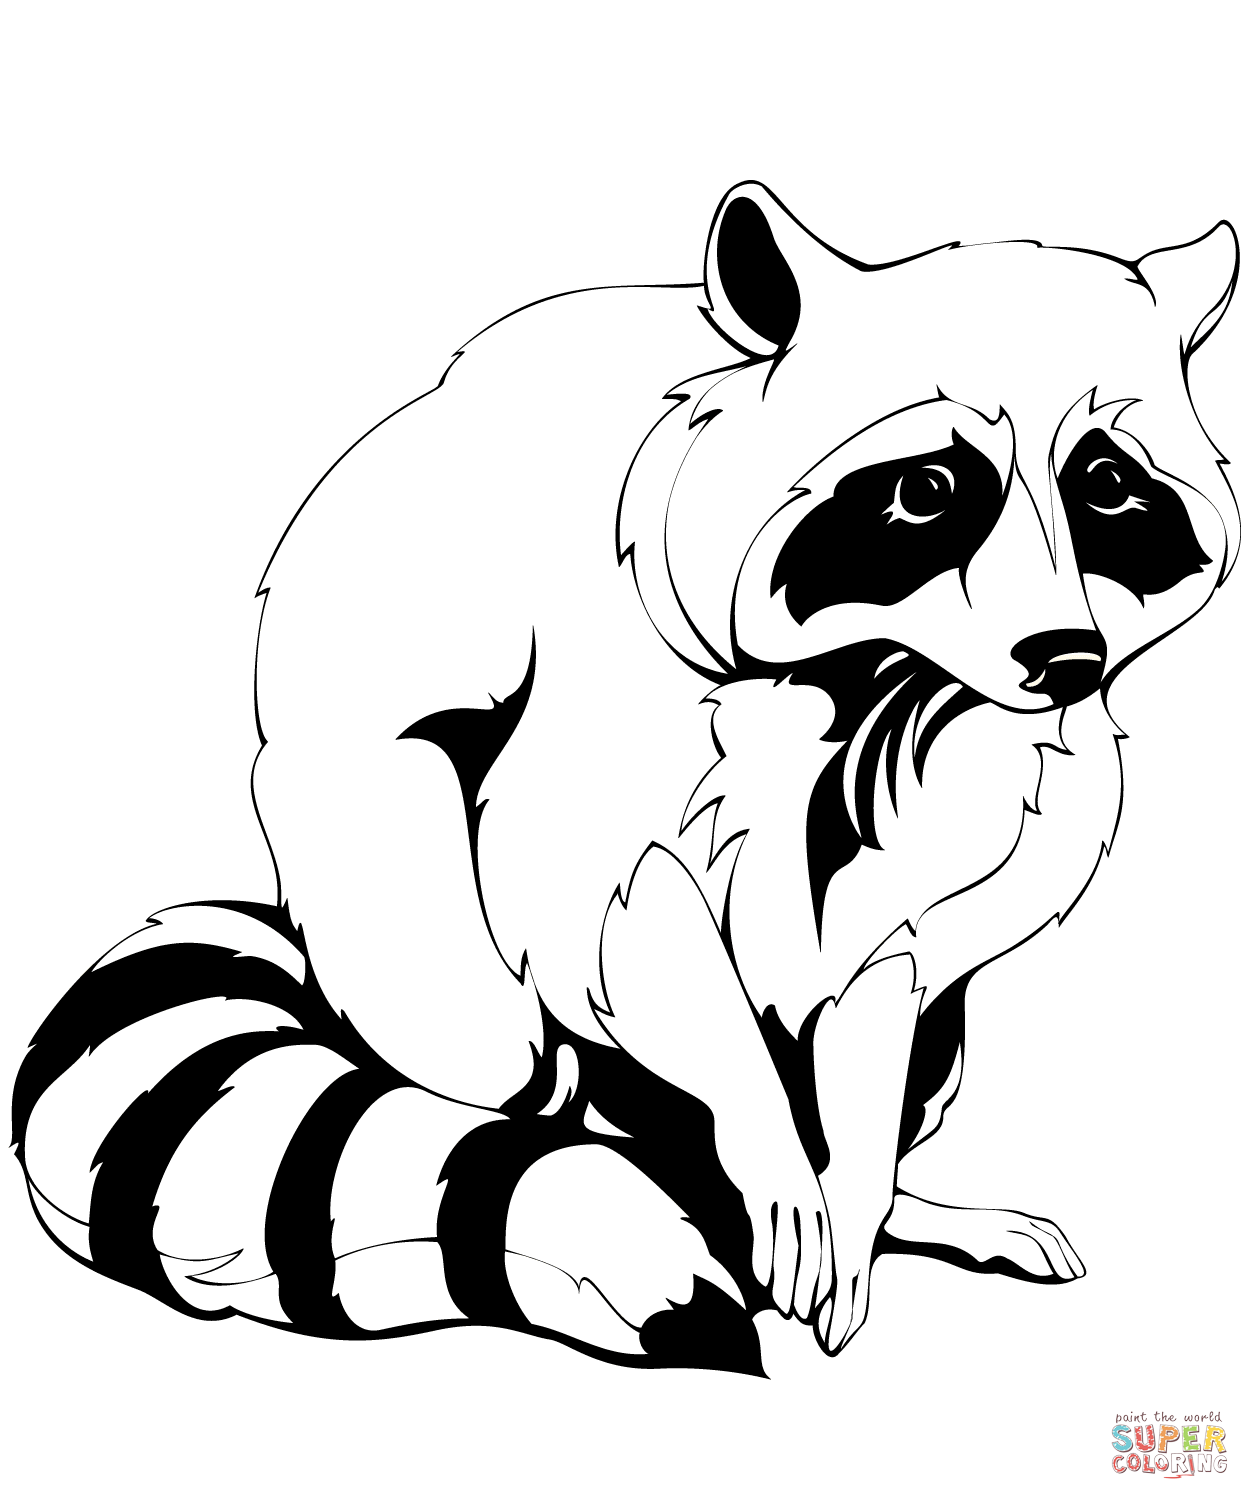 Raccoons coloring pages.